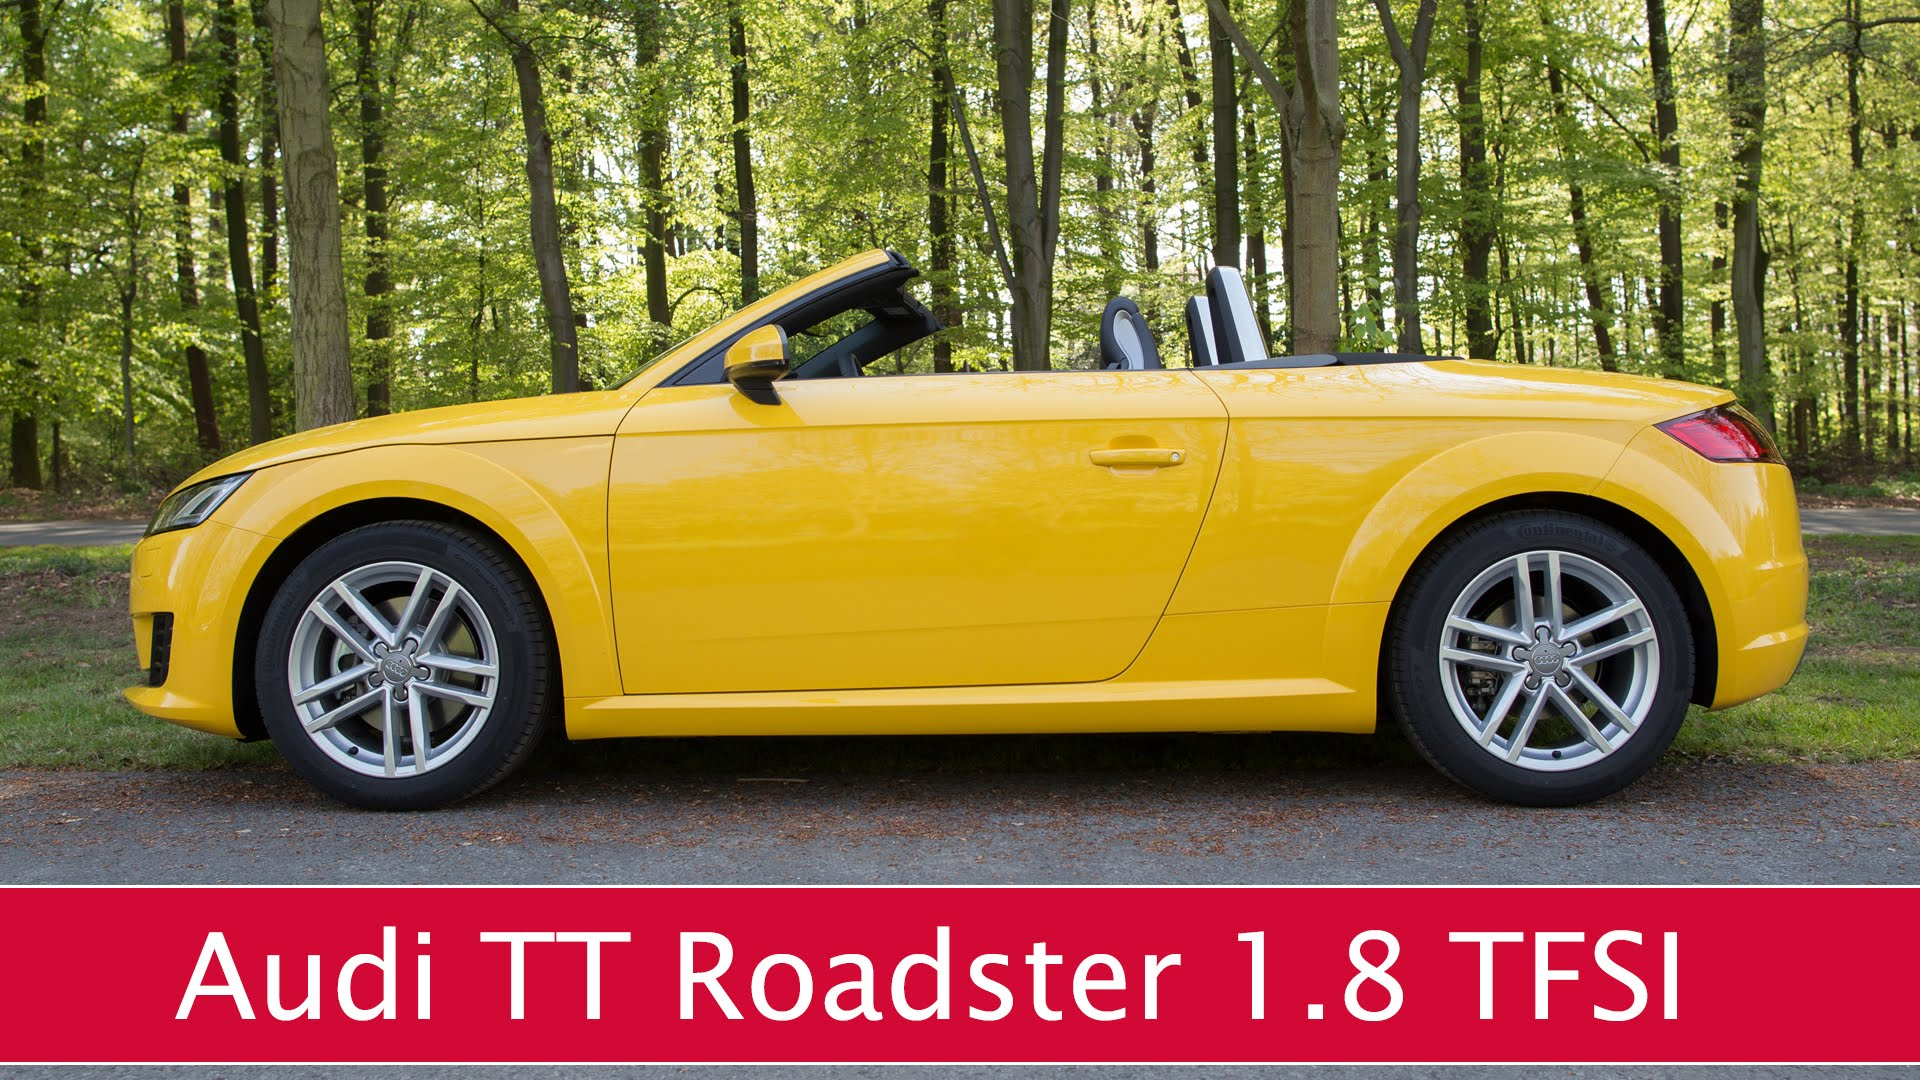 2016 audi tt 1 8 tfsi acceleration test featuring a yellow roadster autoevolution. Black Bedroom Furniture Sets. Home Design Ideas